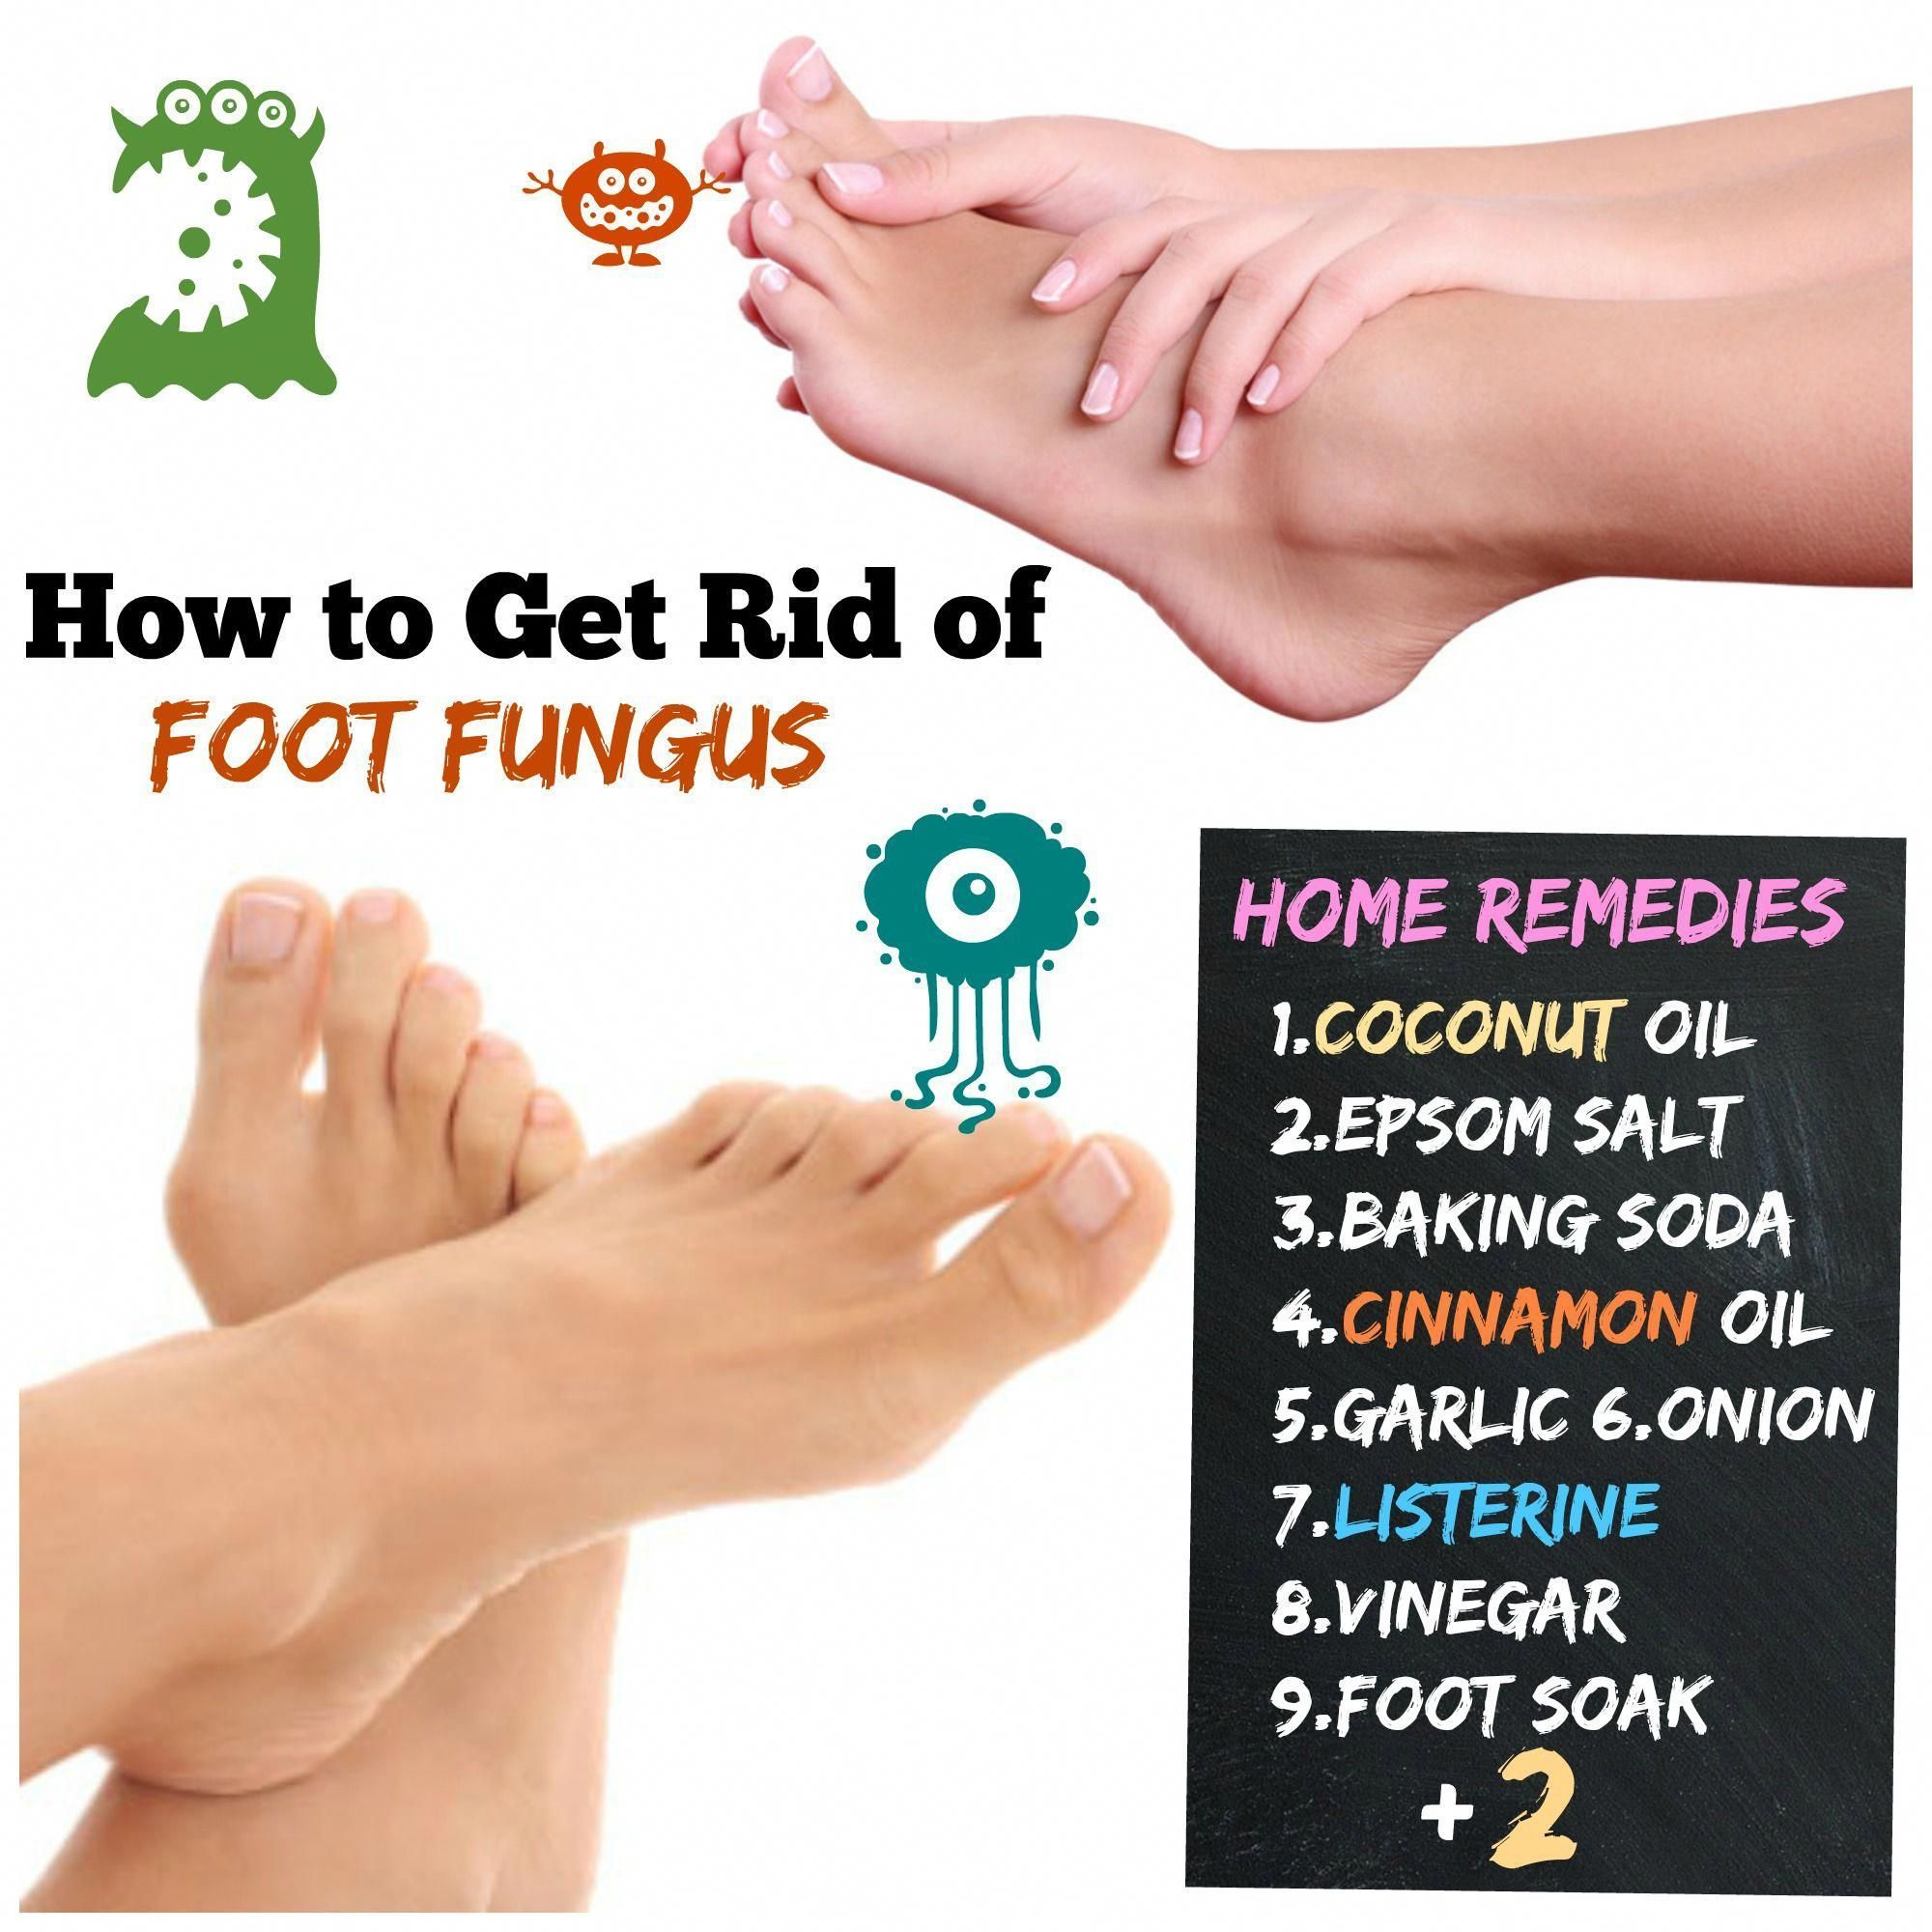 How To Get Rid Of Foot Fungus 11 Athlete S Foot To Happy Feet How To Get Rid Of Foot Fungus Home Foot Fungus Toenail Fungus Remedies Athletes Foot Remedies